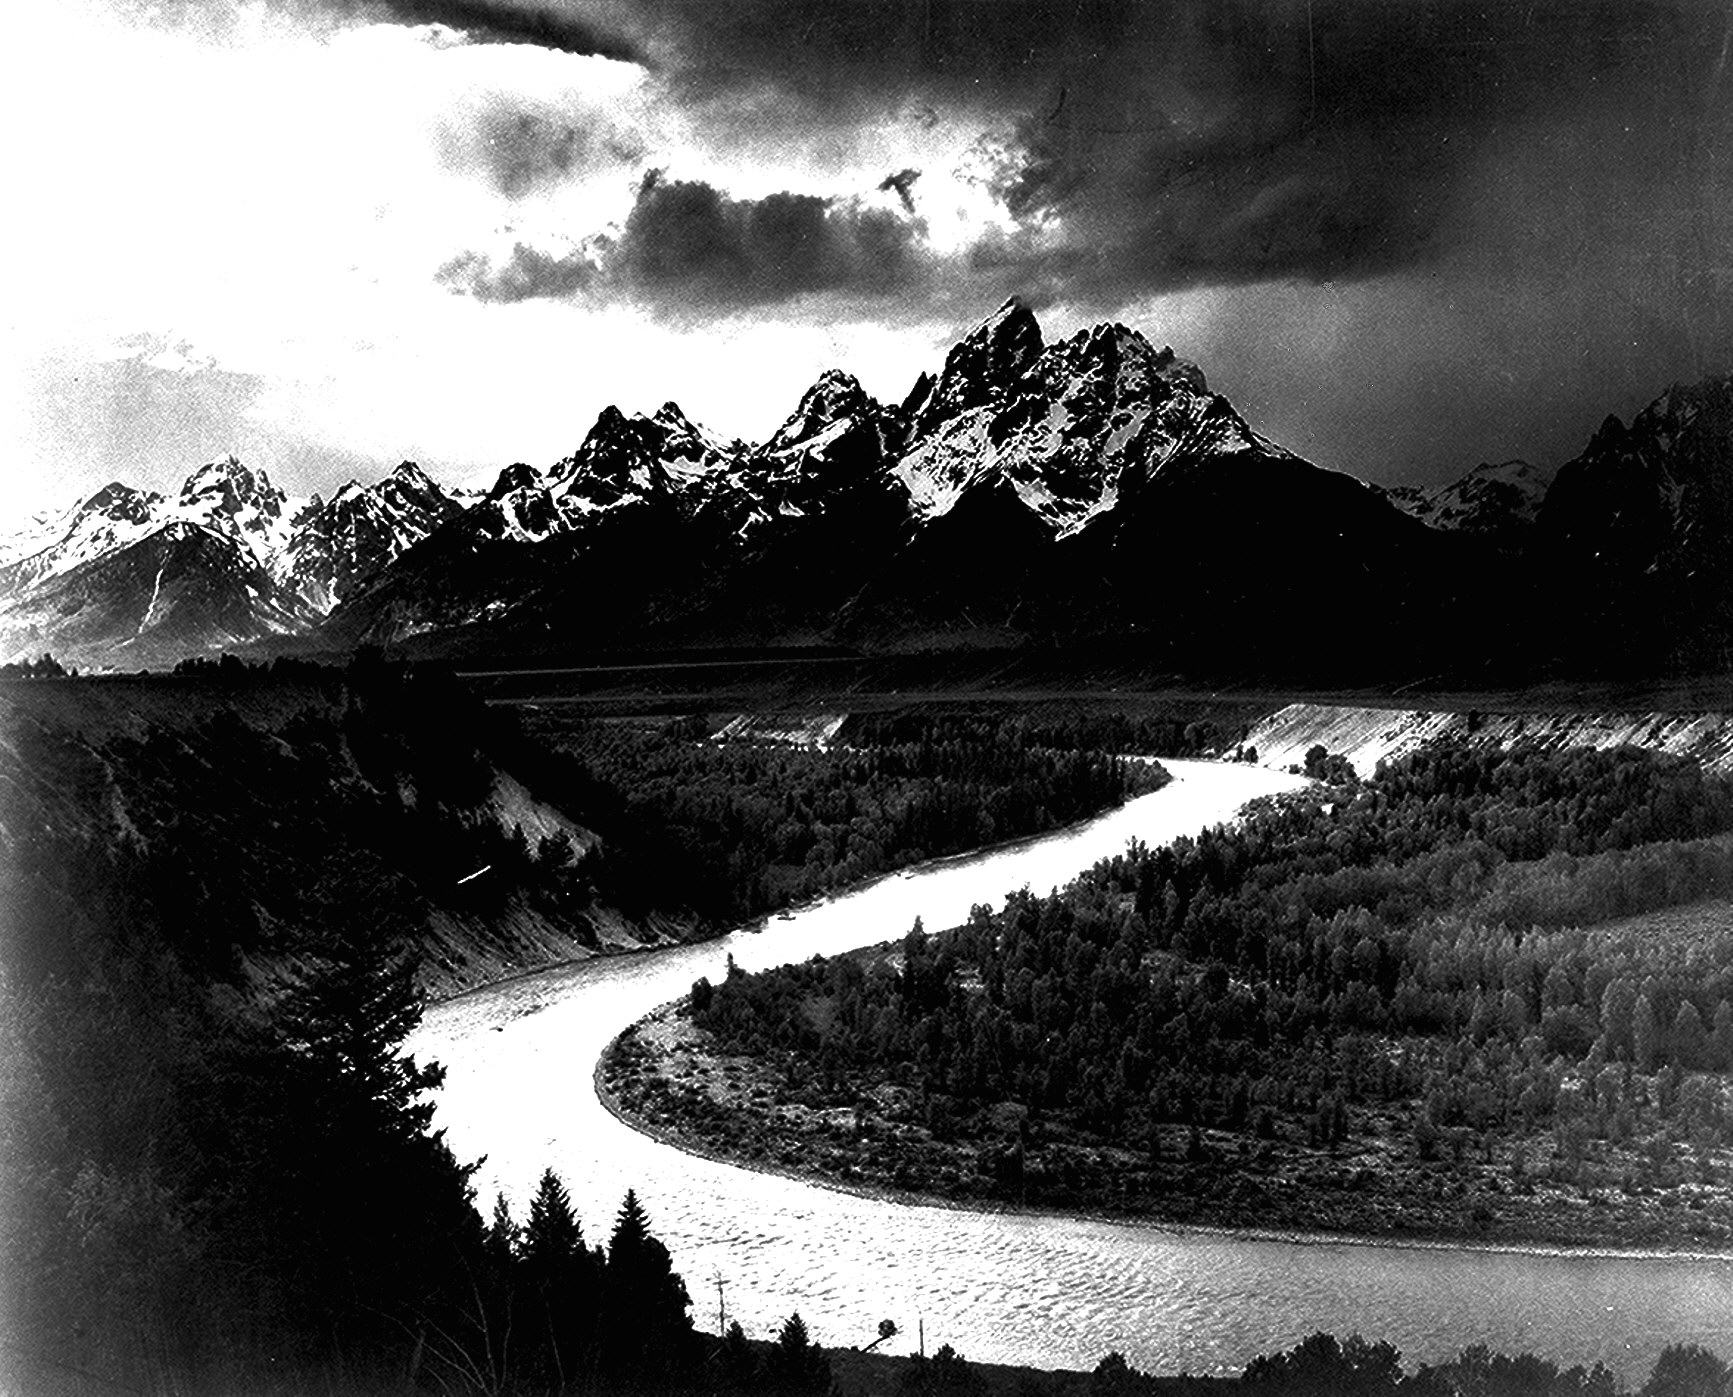 ansel adams photography essays Born free and equal this special presentation reproduces the book born free and equal, a selection of ansel adams's curator of photography essays by former.